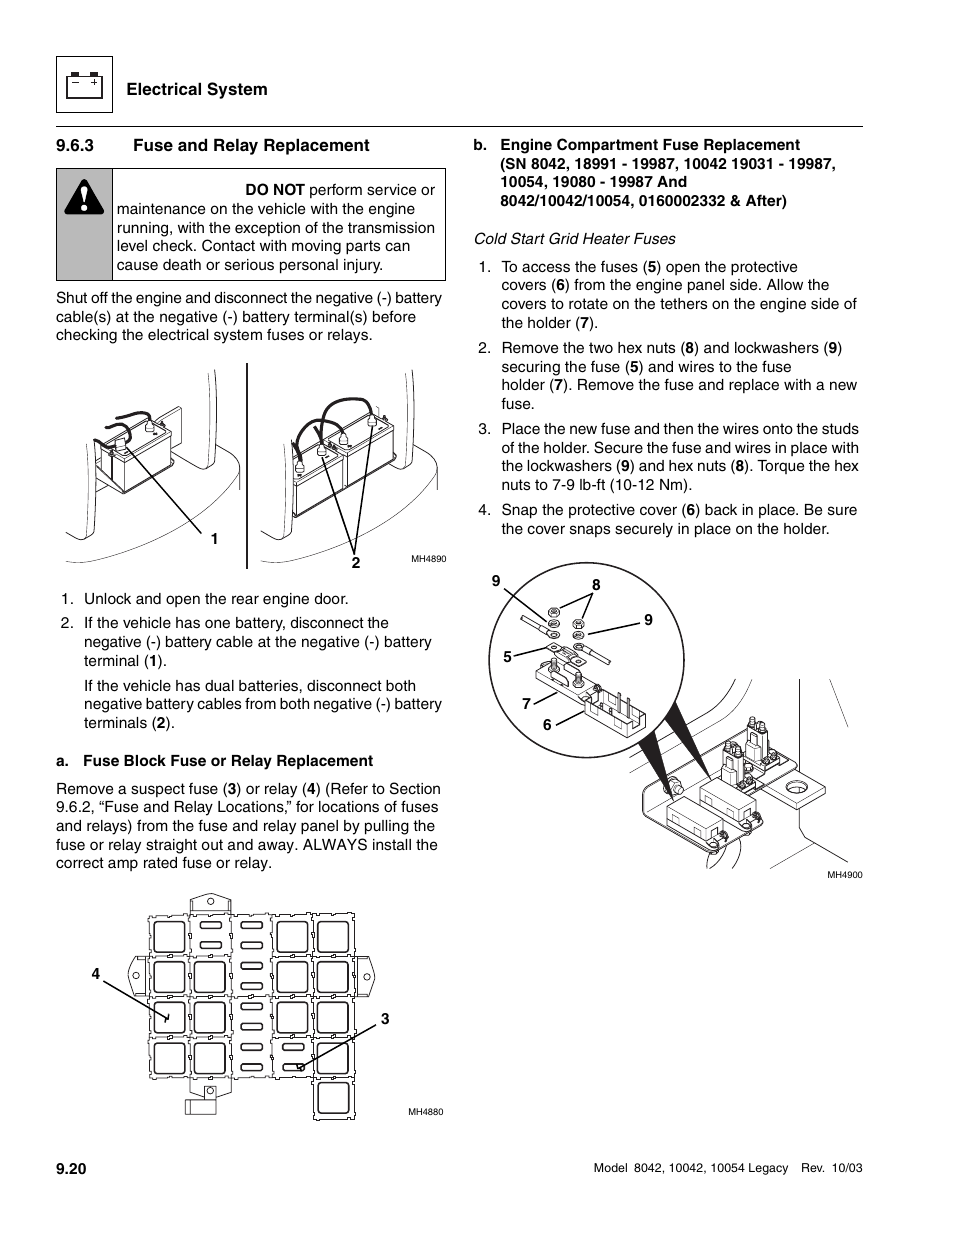 3 Fuse And Relay Replacement Warning Skytrak 8042 Service Manual Car Box Repment User Page 611 906